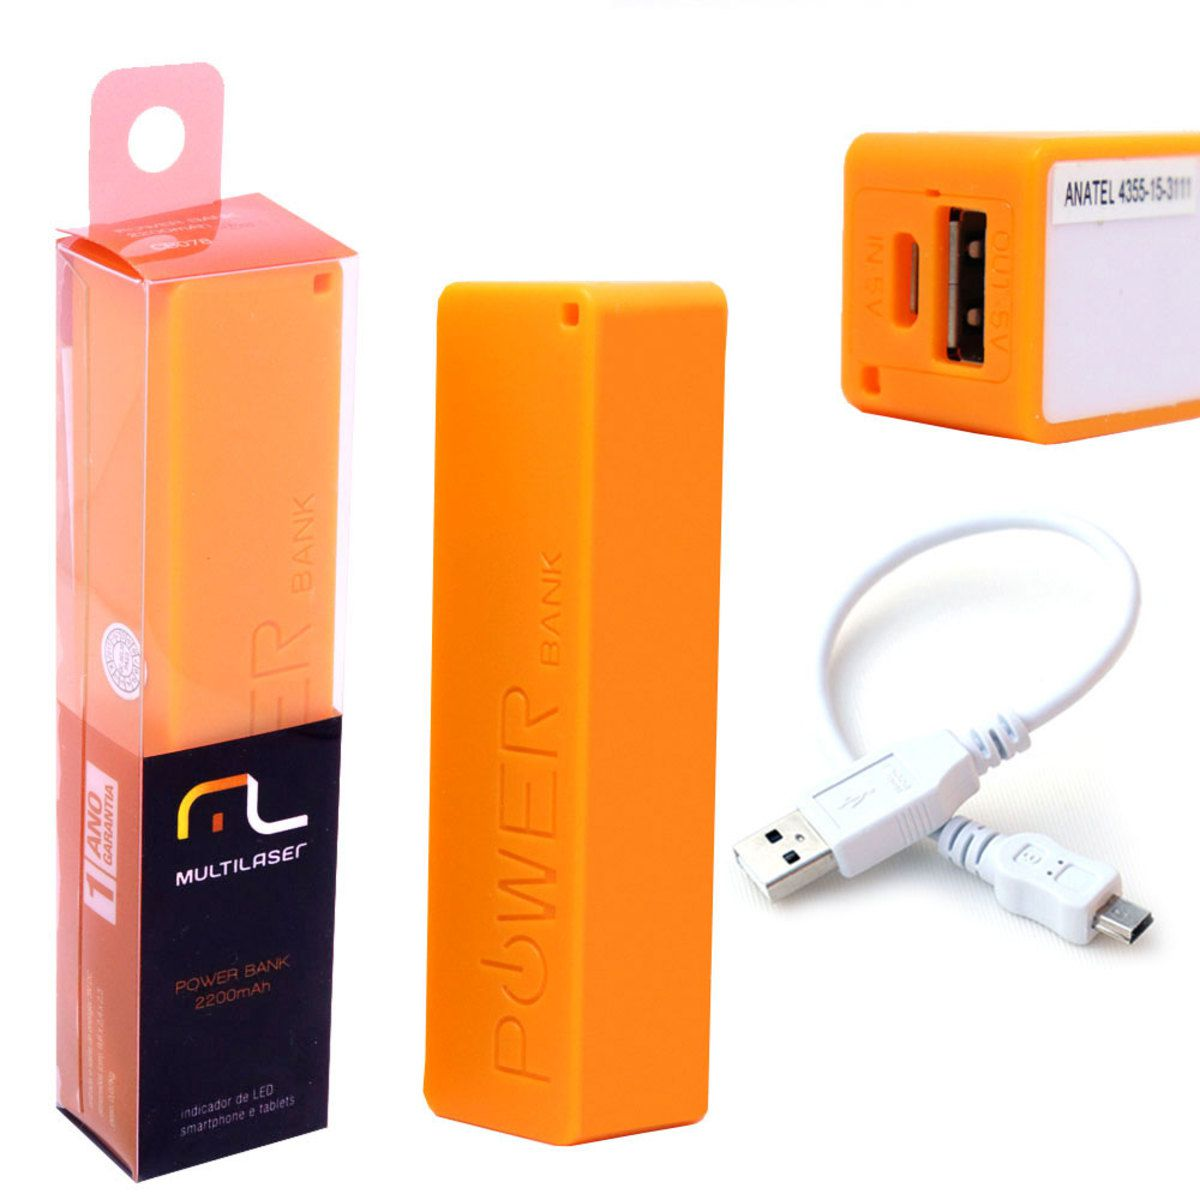 SmartoGo Power bank 2200MAH CB078 Multilaser